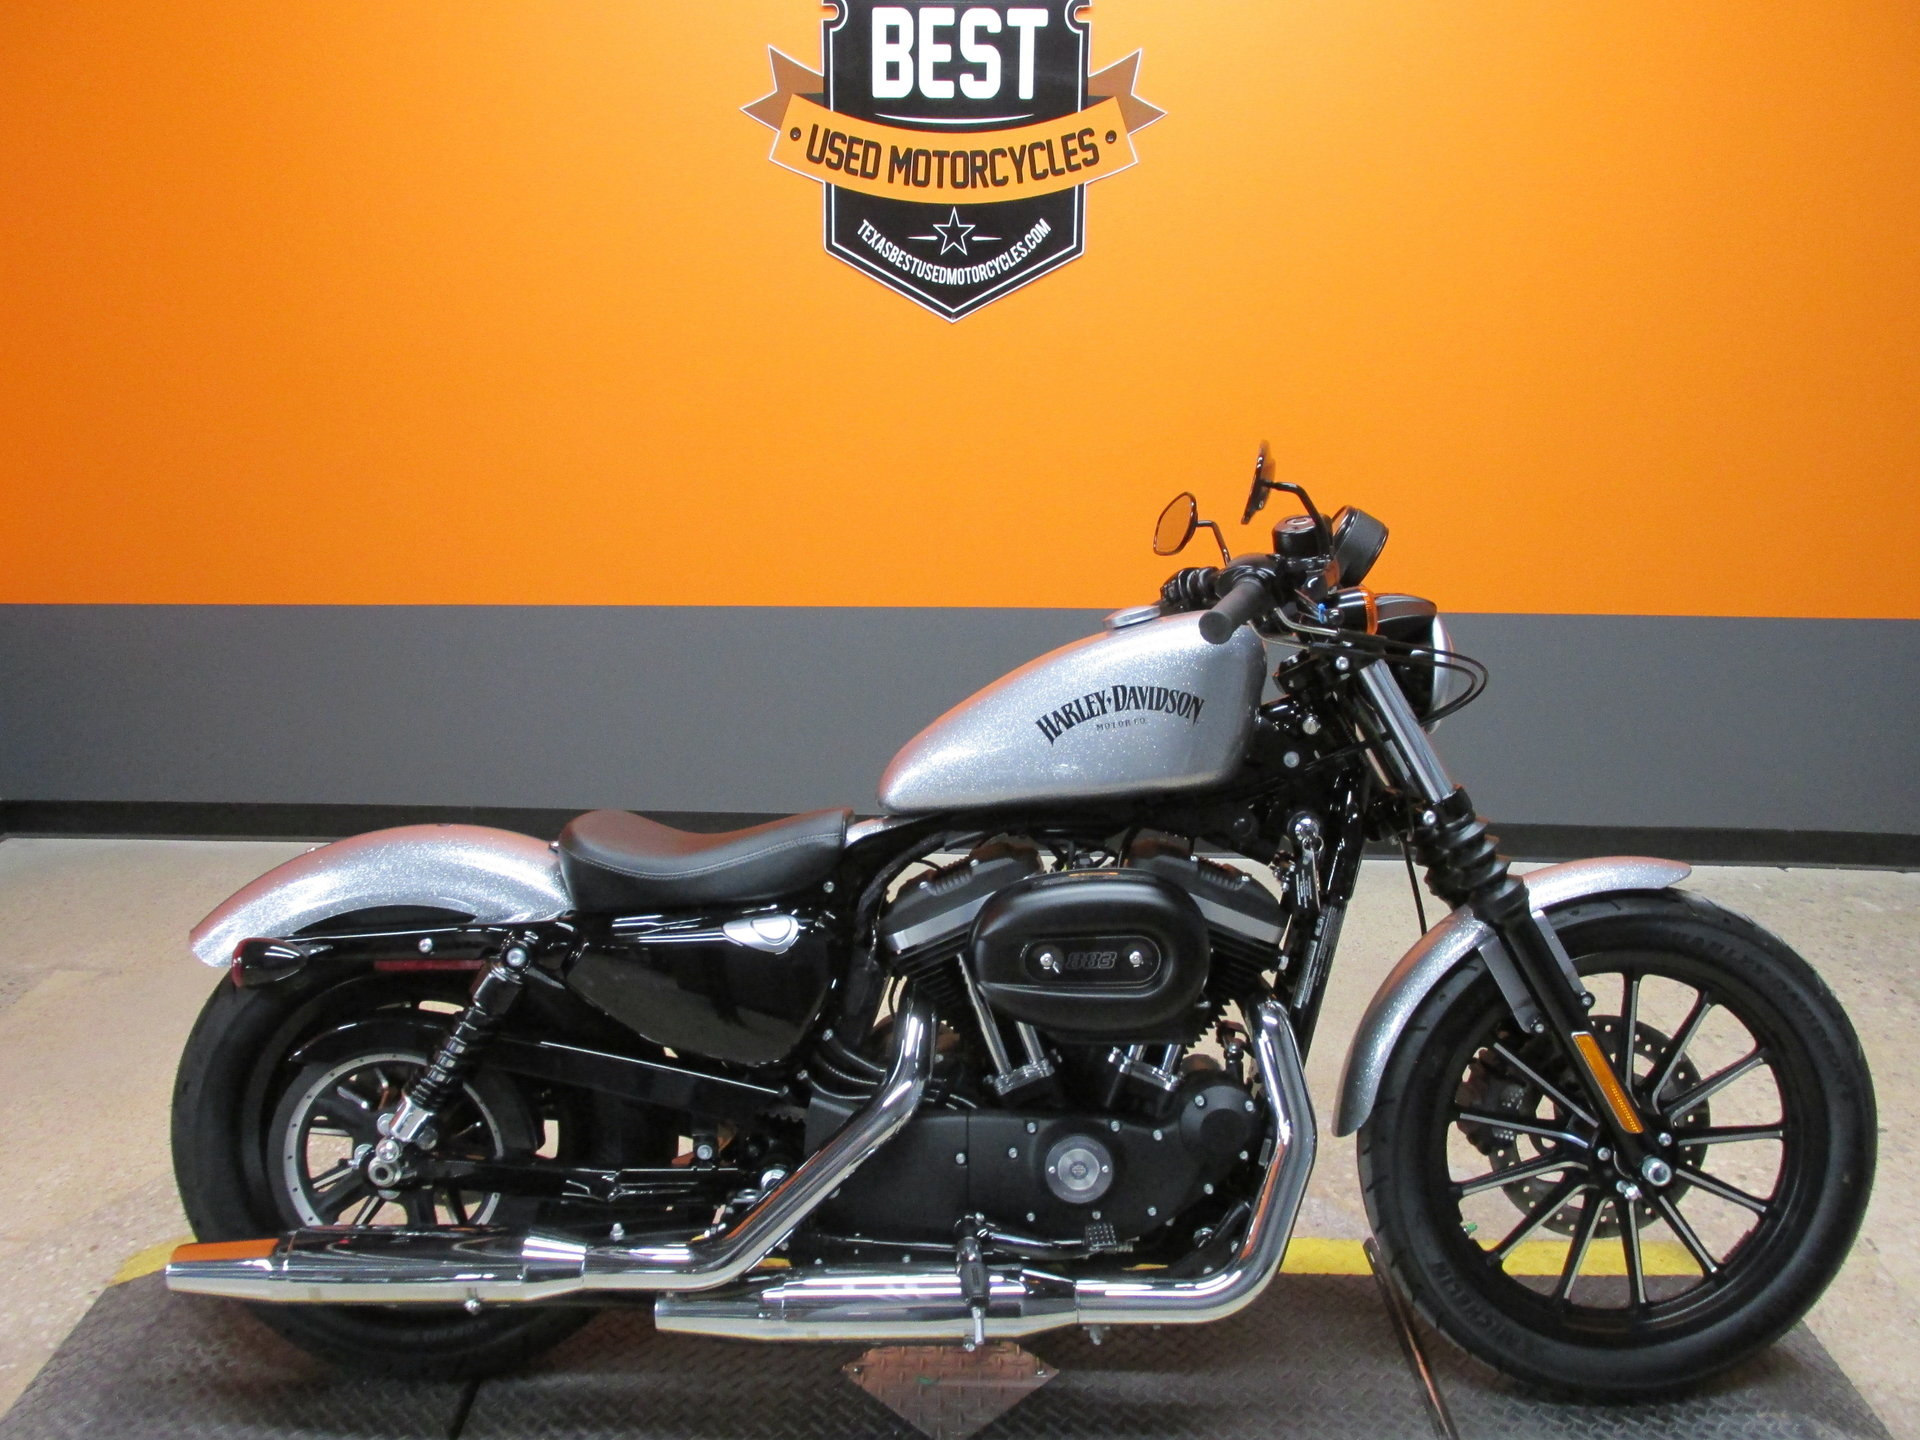 2015 harley davidson sportster 883 iron xl883n for sale 87770 mcg. Black Bedroom Furniture Sets. Home Design Ideas